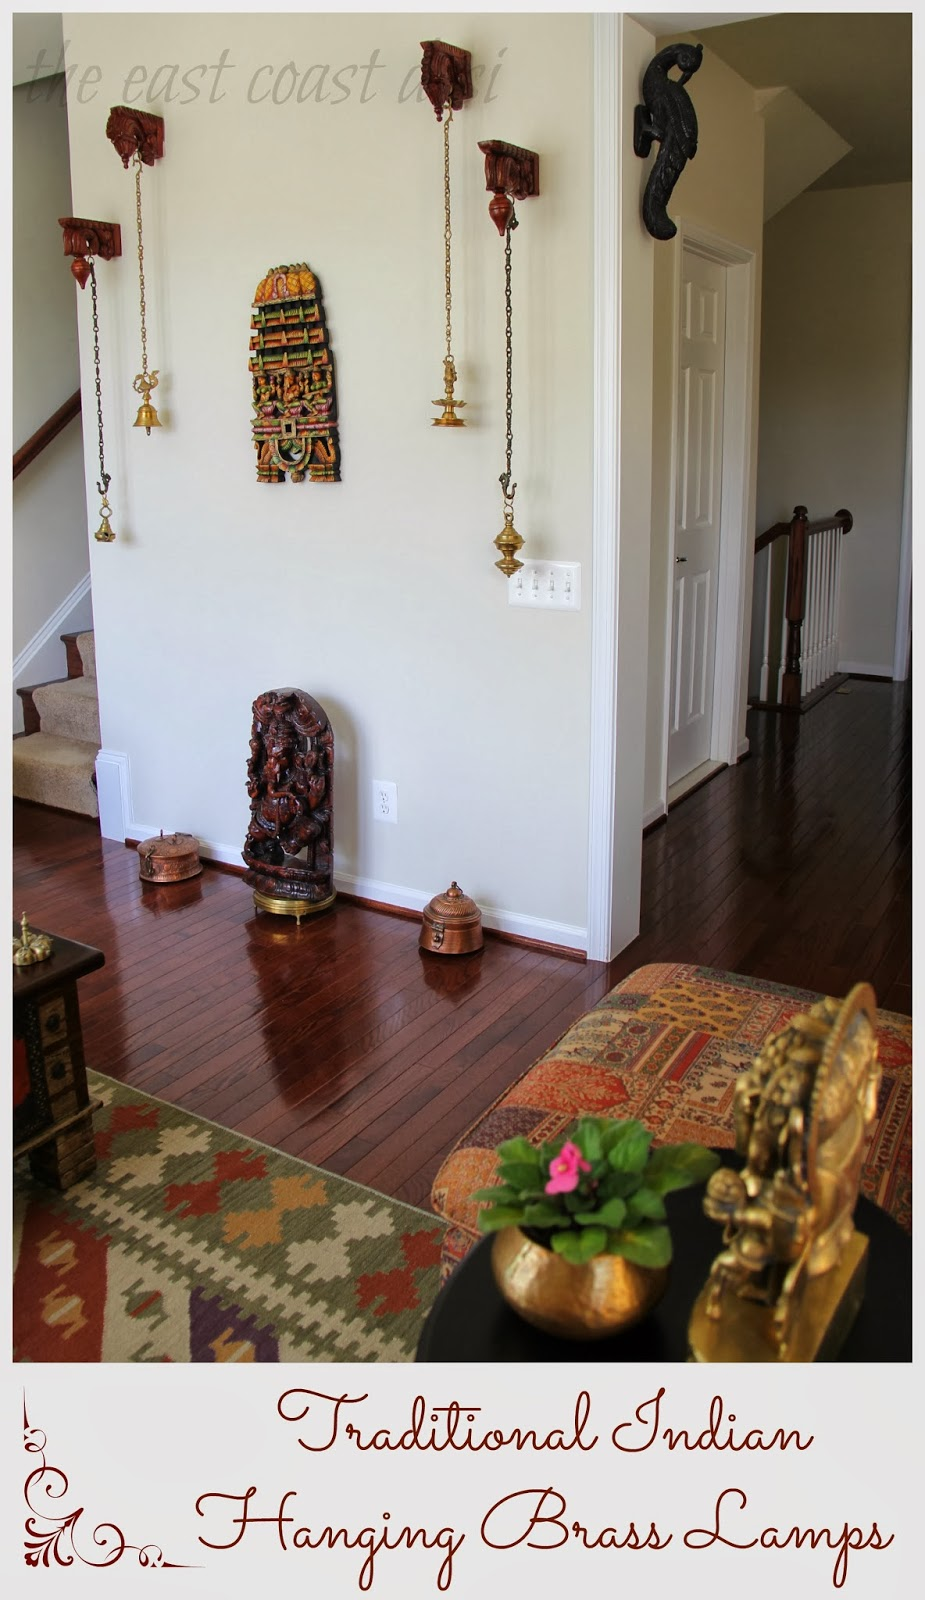 The east coast desi my living room a reflection of india for My home interior